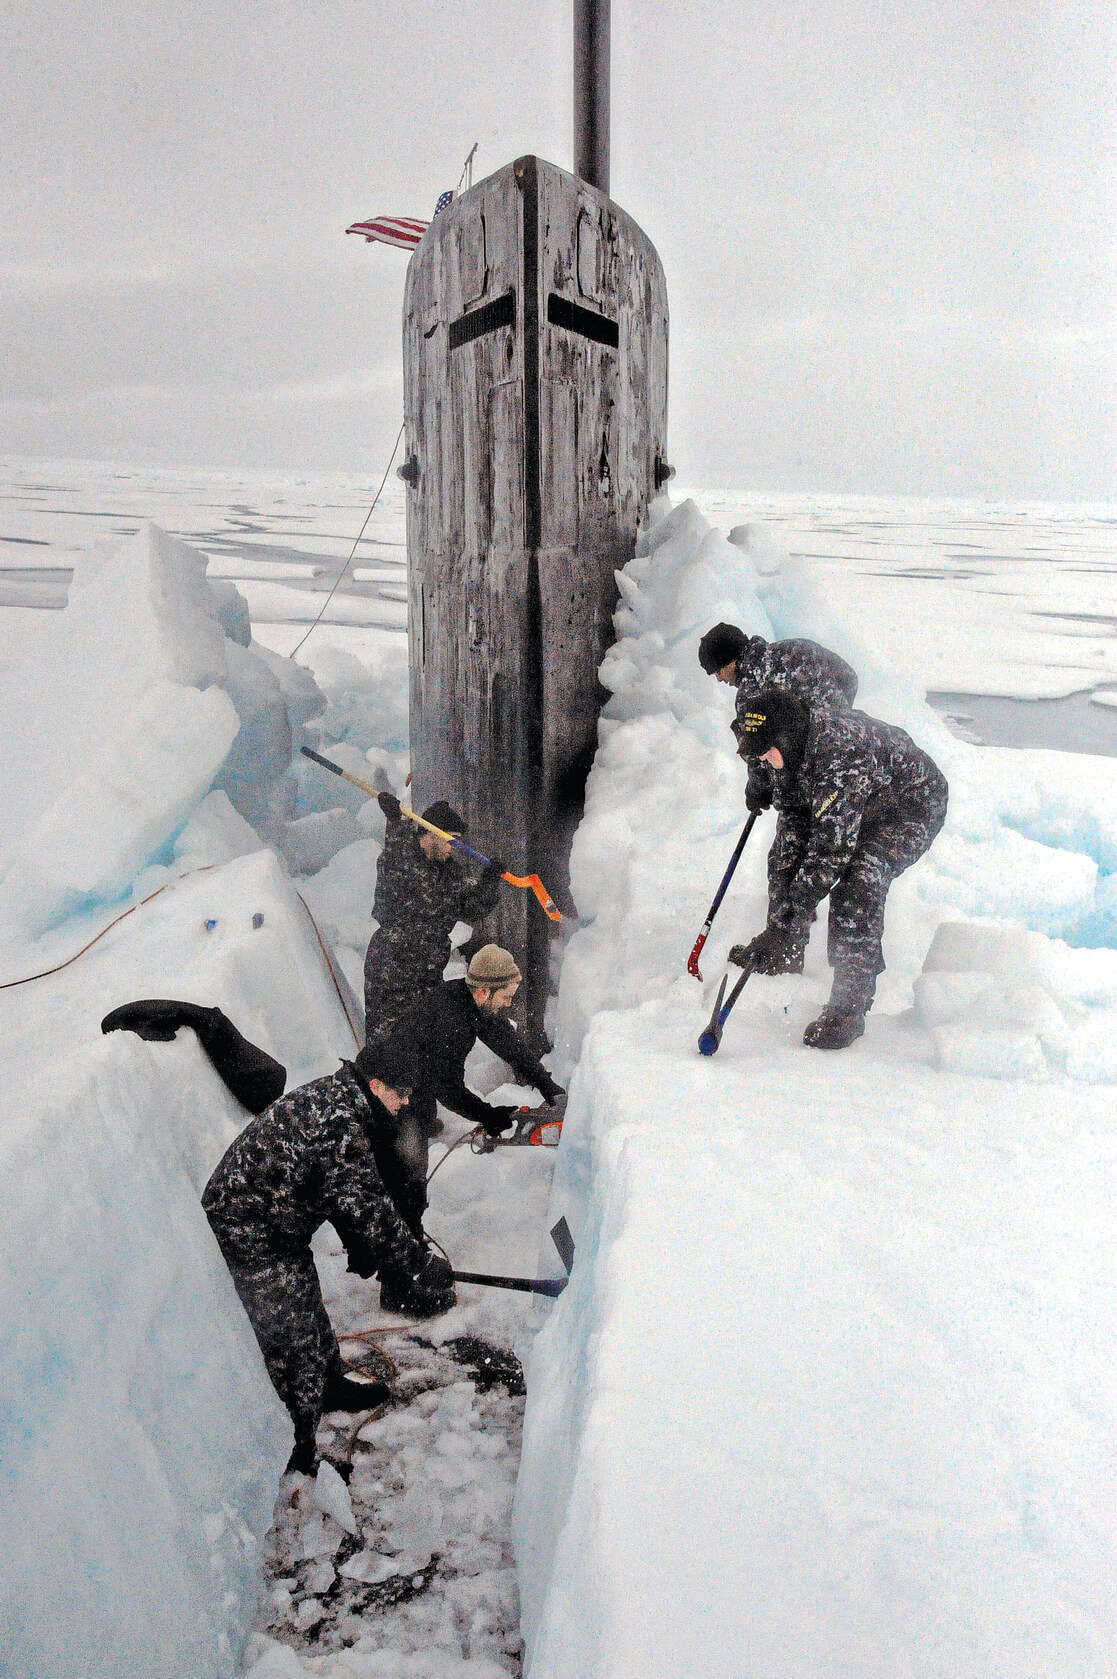 People digging out ice in Alaska